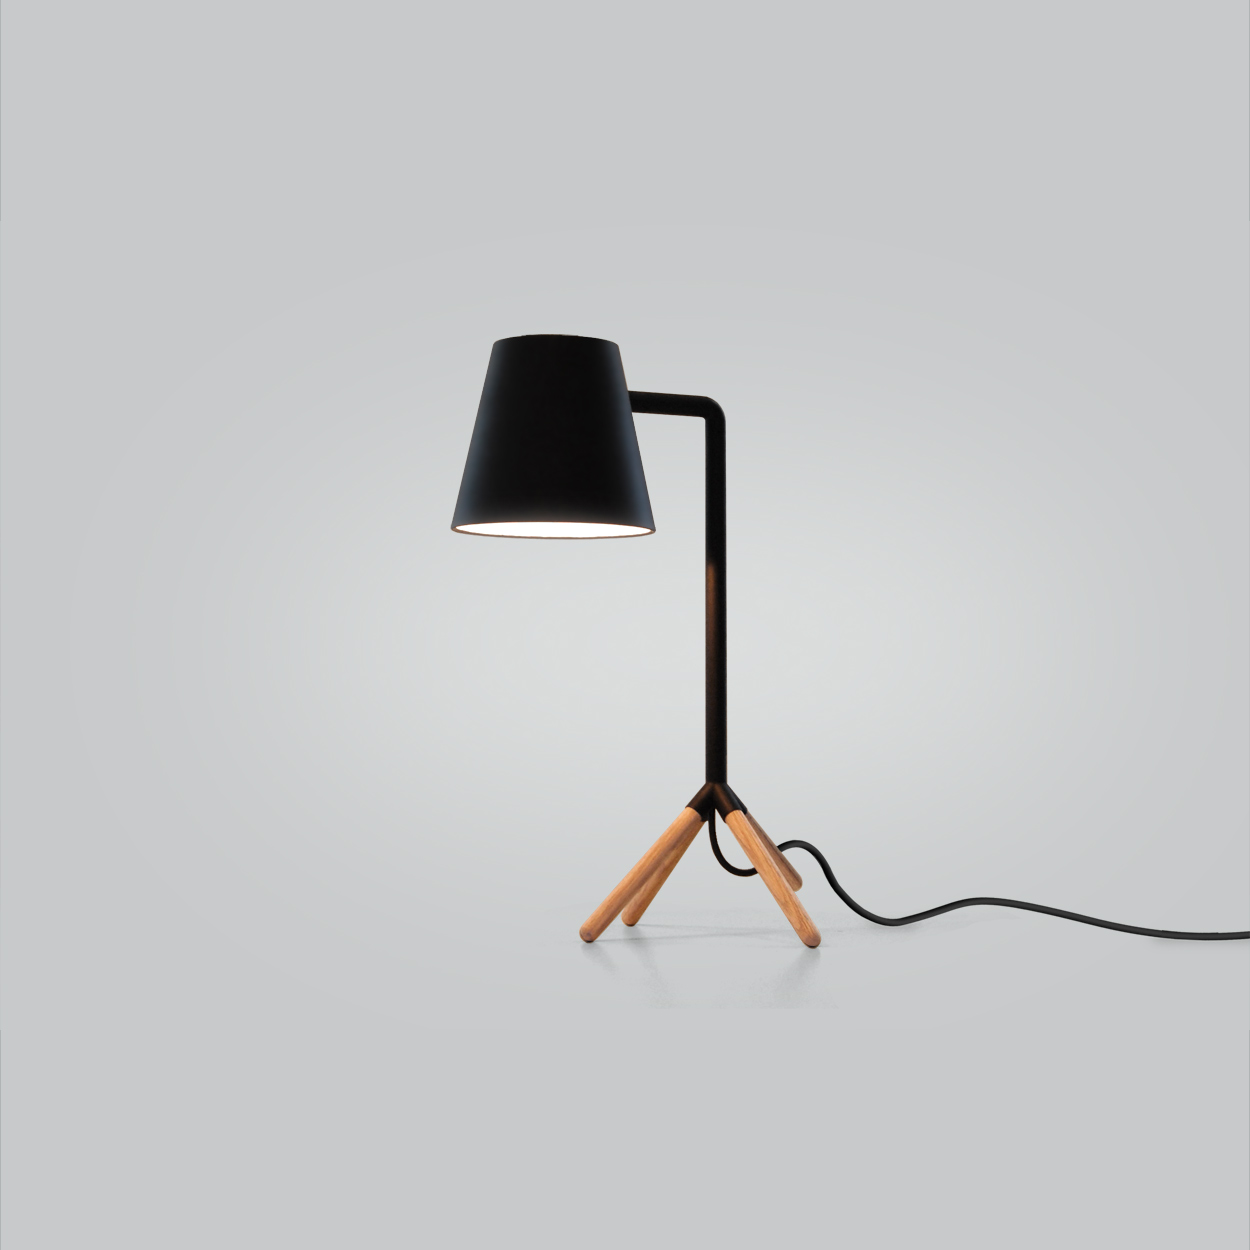 Slightly Awkward Lamp   Exhibition: CITE Goes America 2010  The defining beauty in people is often the characteristic that doesn't fit the standard mold. The Slightly Awkward Desk Lamp was simple and minimal, but with a peculiar posture. The awkward stance of the lamp, with its truncated fourth leg, gave it life and personality while allowing it to balance as an ambient table lamp or a directional task lamp.